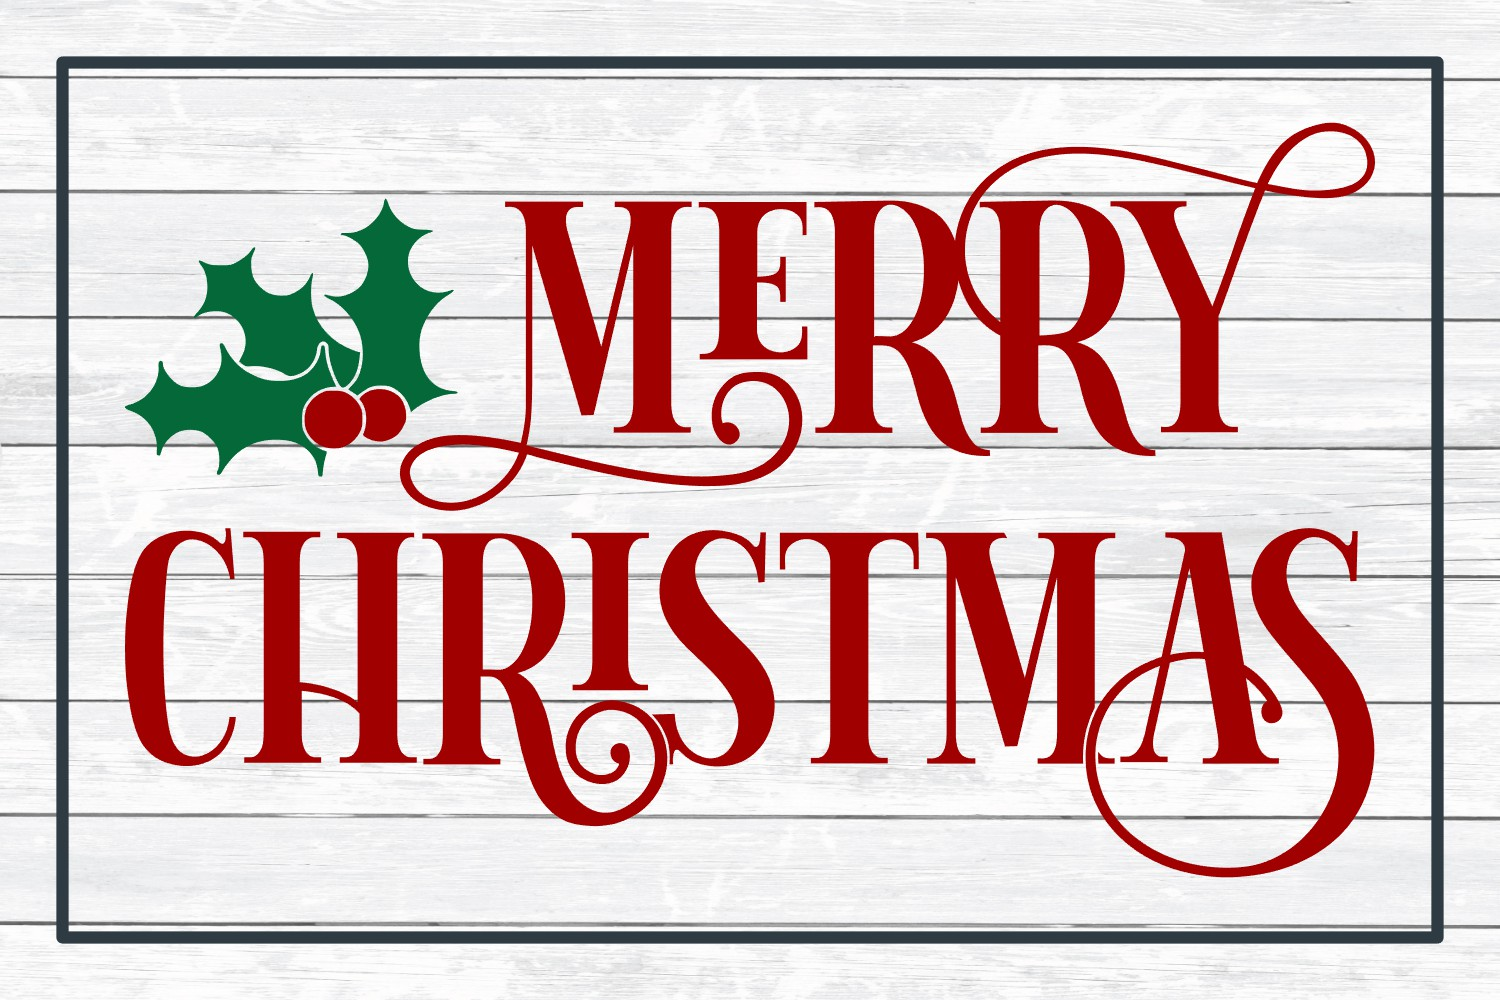 Merry Christmas, Winter Holiday SVG Cut File example image 3